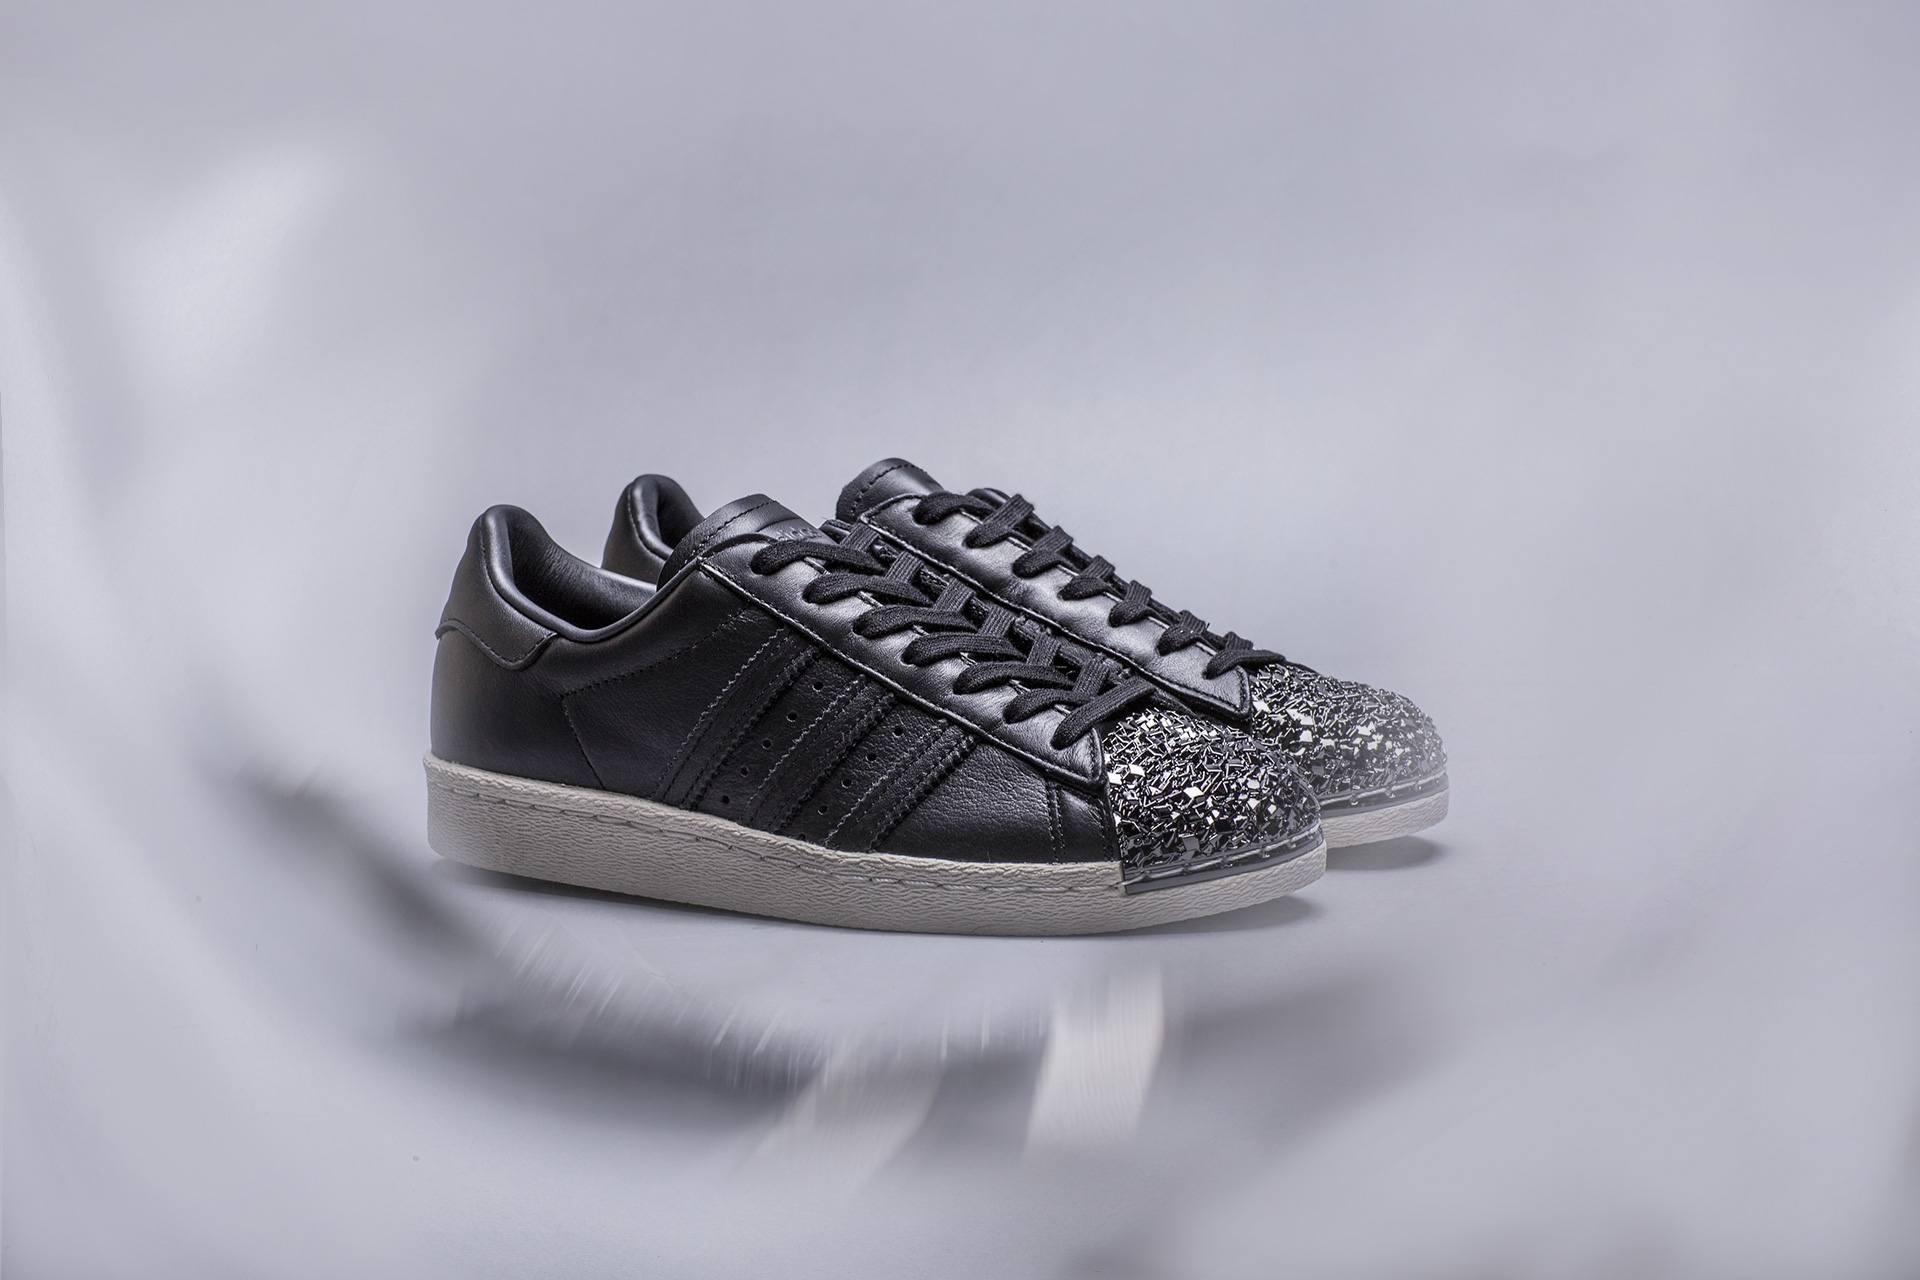 low priced d1976 f0e67 Женские Кроссовки Superstar 80S 3D MT adidas Originals (BB2033)